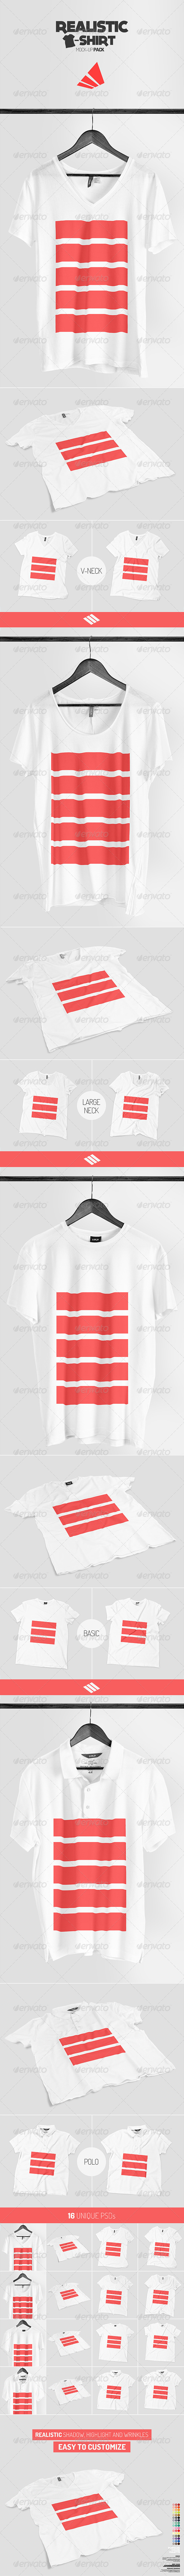 Realistic T-shirt Mock-up Pack